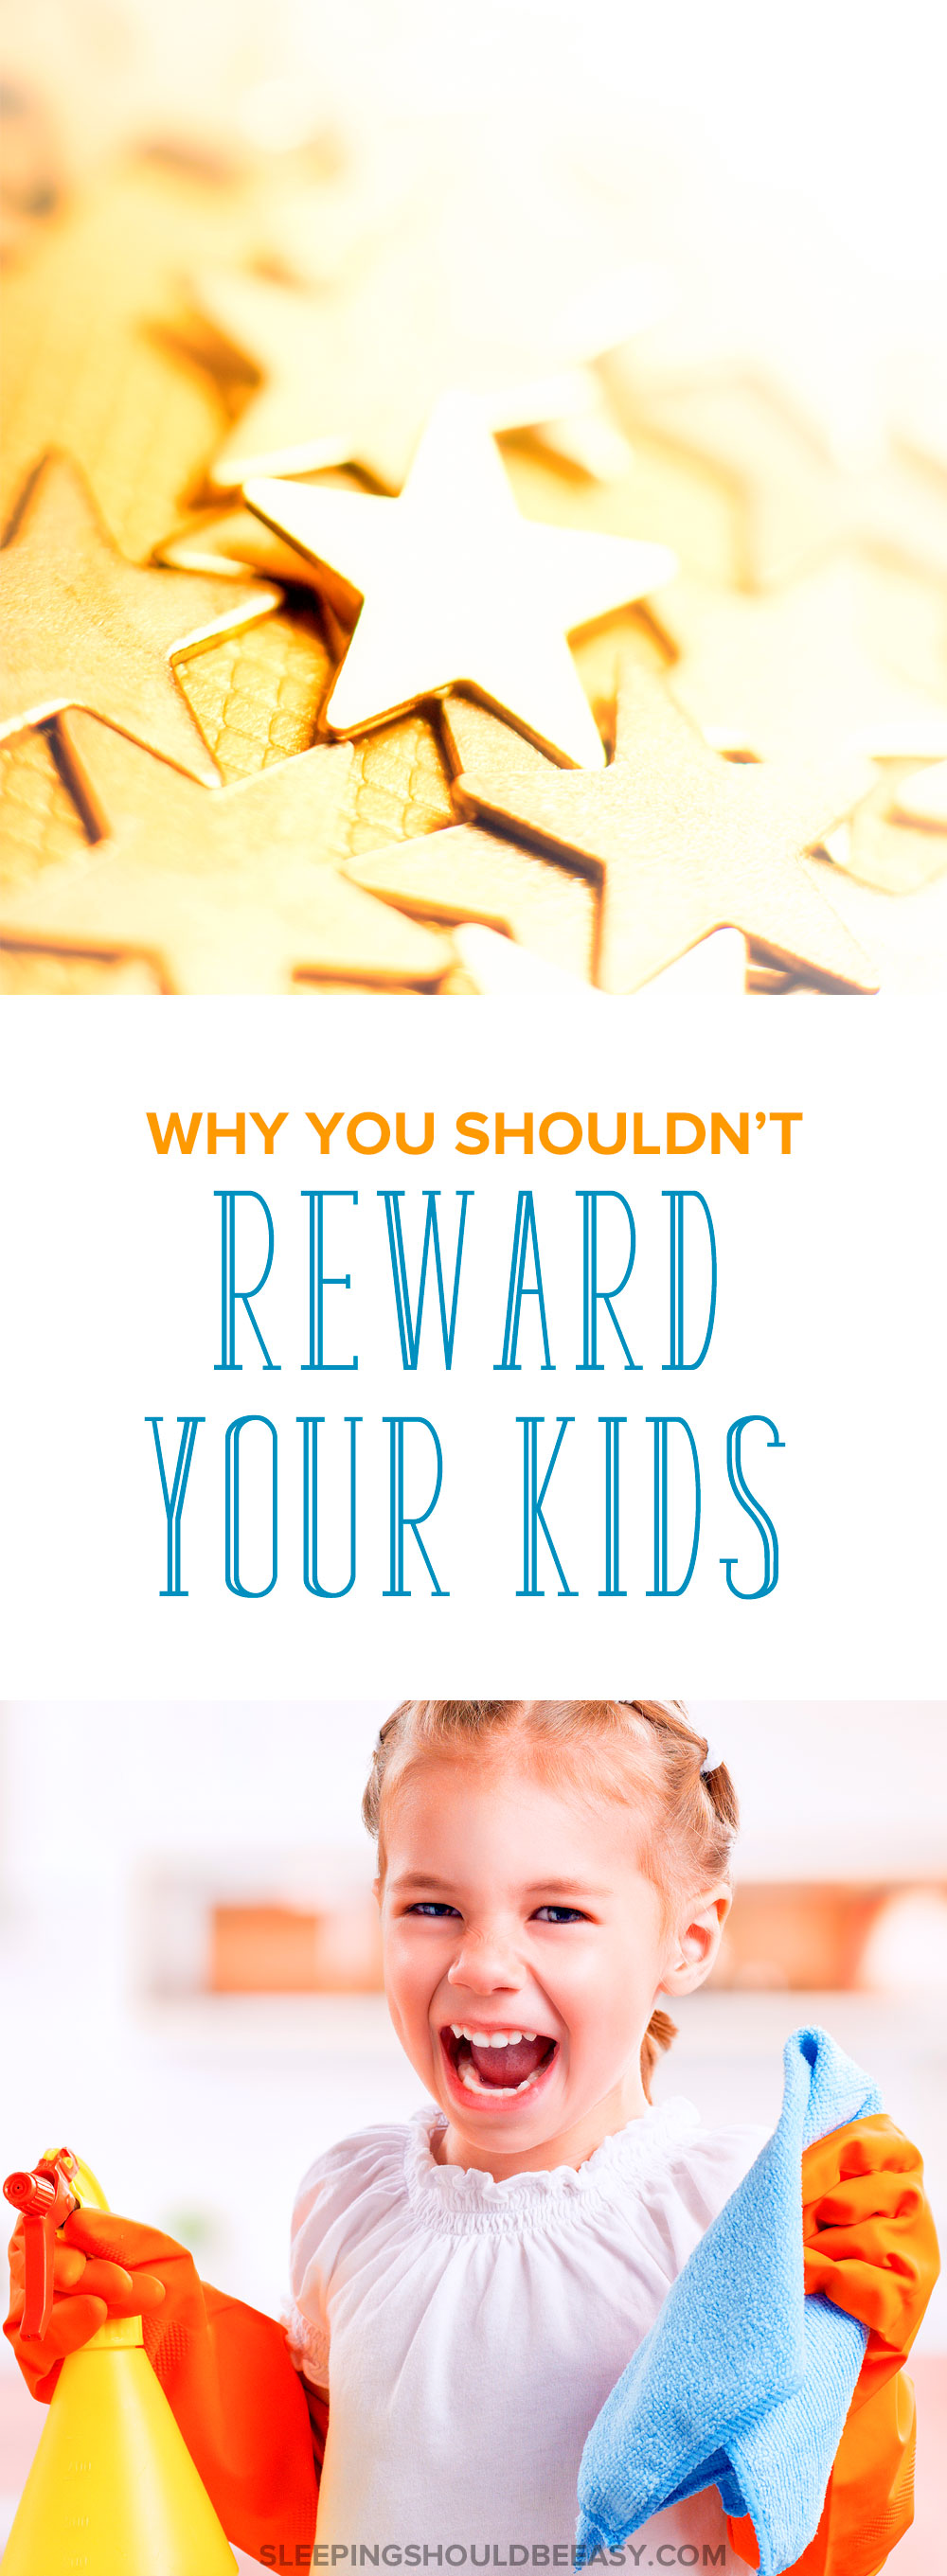 Most parents use a reward system for kids, from potty training to chores. Here's why you shouldn't reward your kids (and what to do instead).